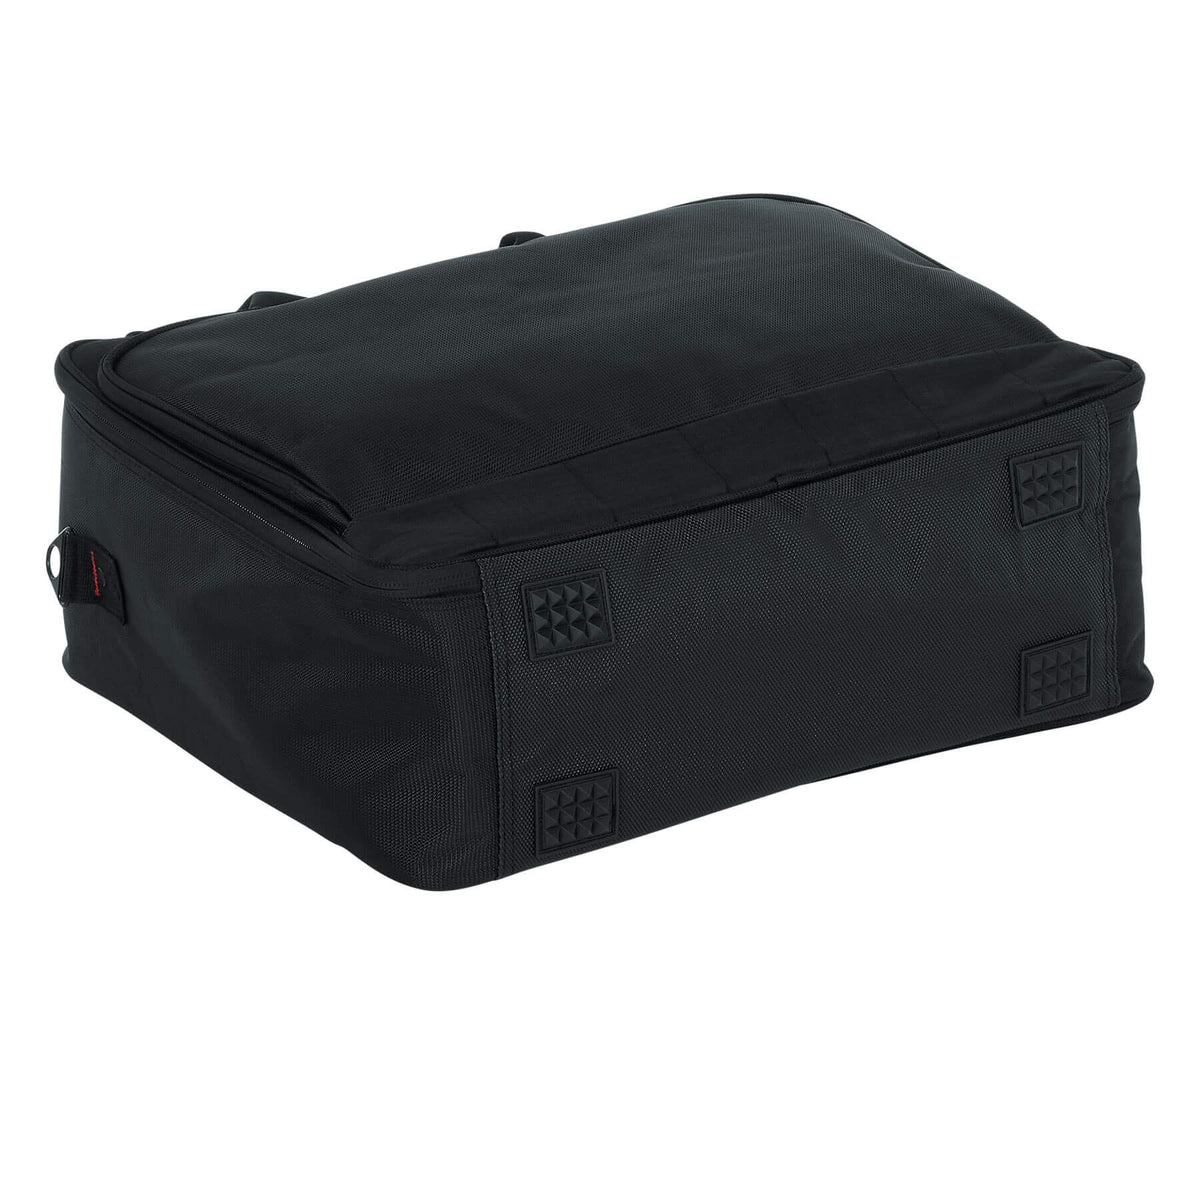 Gator Cases Padded Nylon Equipment Bag for Tascam 424 MKII Recorders